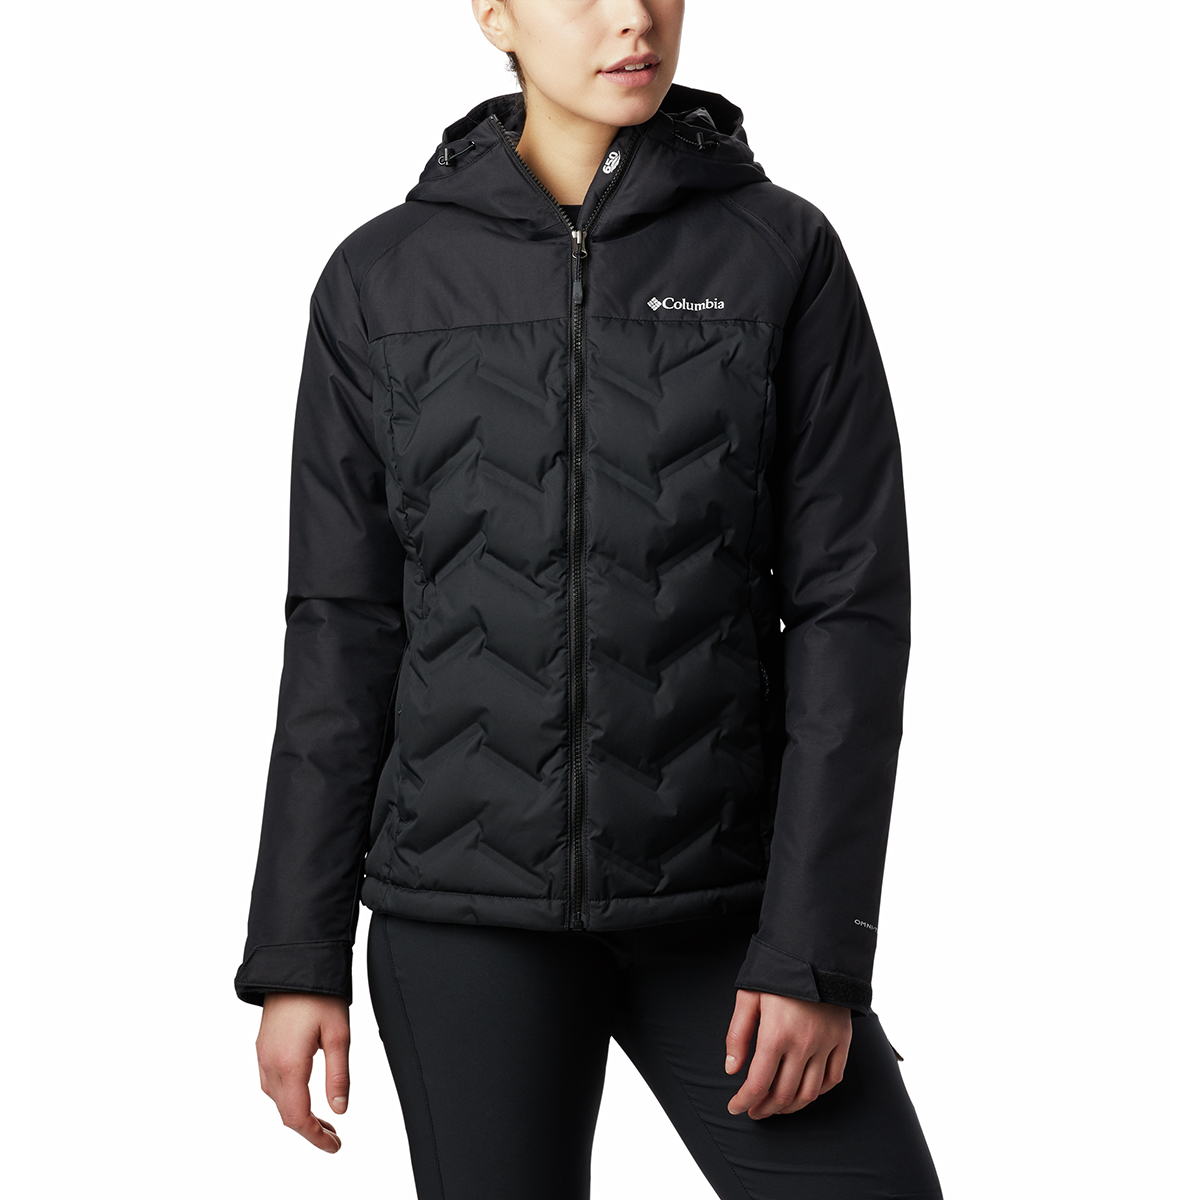 Columbia Women's Grand Trek Down Jacket - Black, S